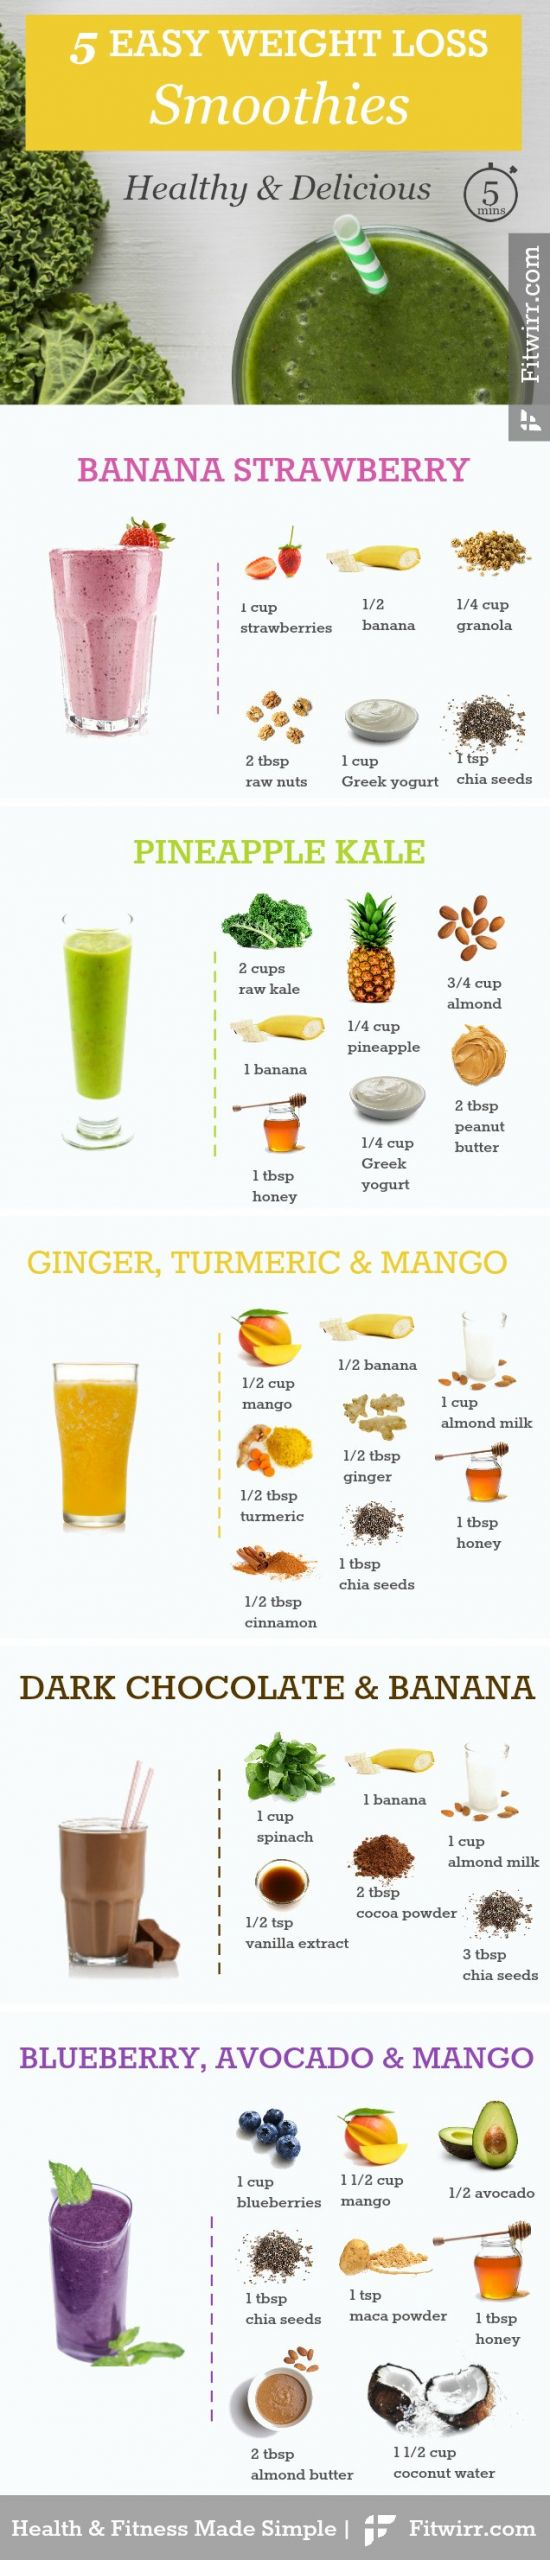 Healthy Banana Smoothie Recipes For Weight Loss  Healthy Smoothie Recipes 5 Best Smoothies for Weight